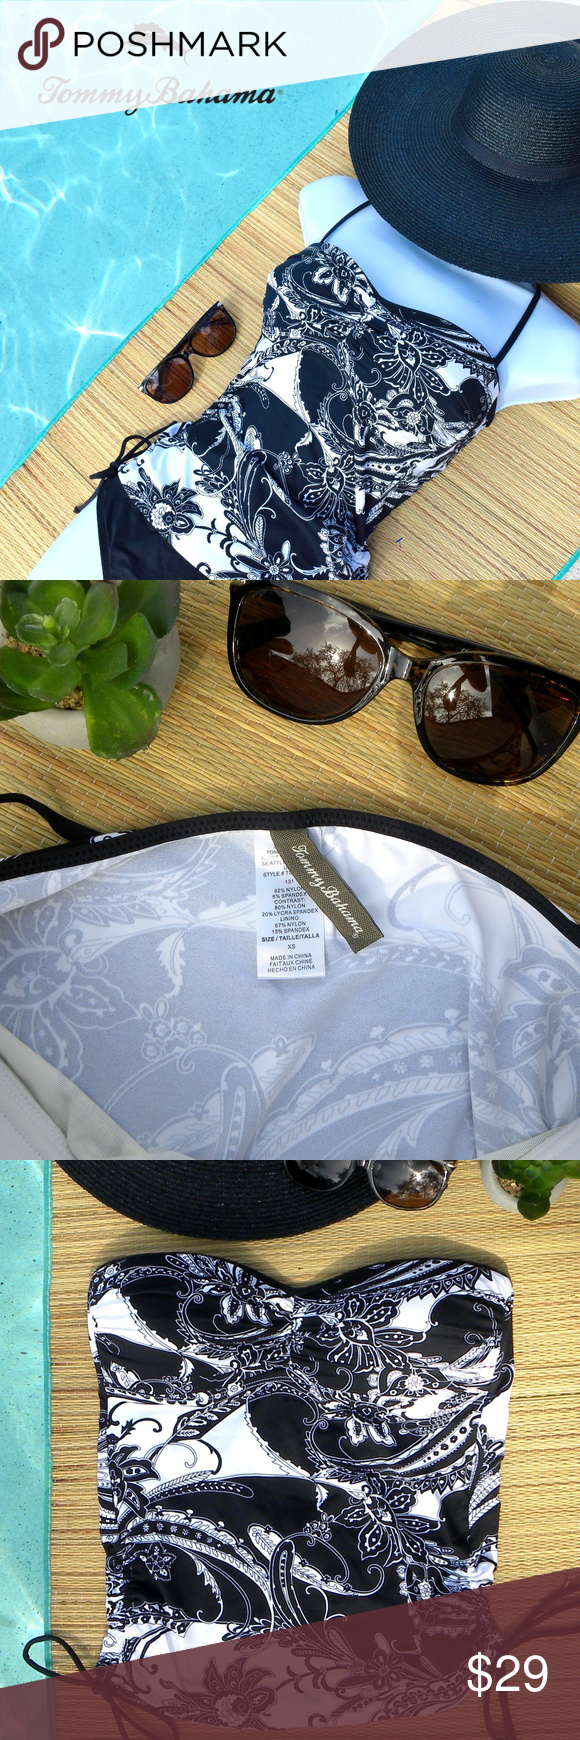 TOMMY BAHAMA Tankini Top This Tommy Bahama strapless tankini (TOP ONLY) comes in a crisp black and white paisley floral print. Comes with detachable halter strap. Drawstrings at sides to adjust length and ruching. Molded foam bra cups. Pull over.  EUC. Tommy Bahama Swim